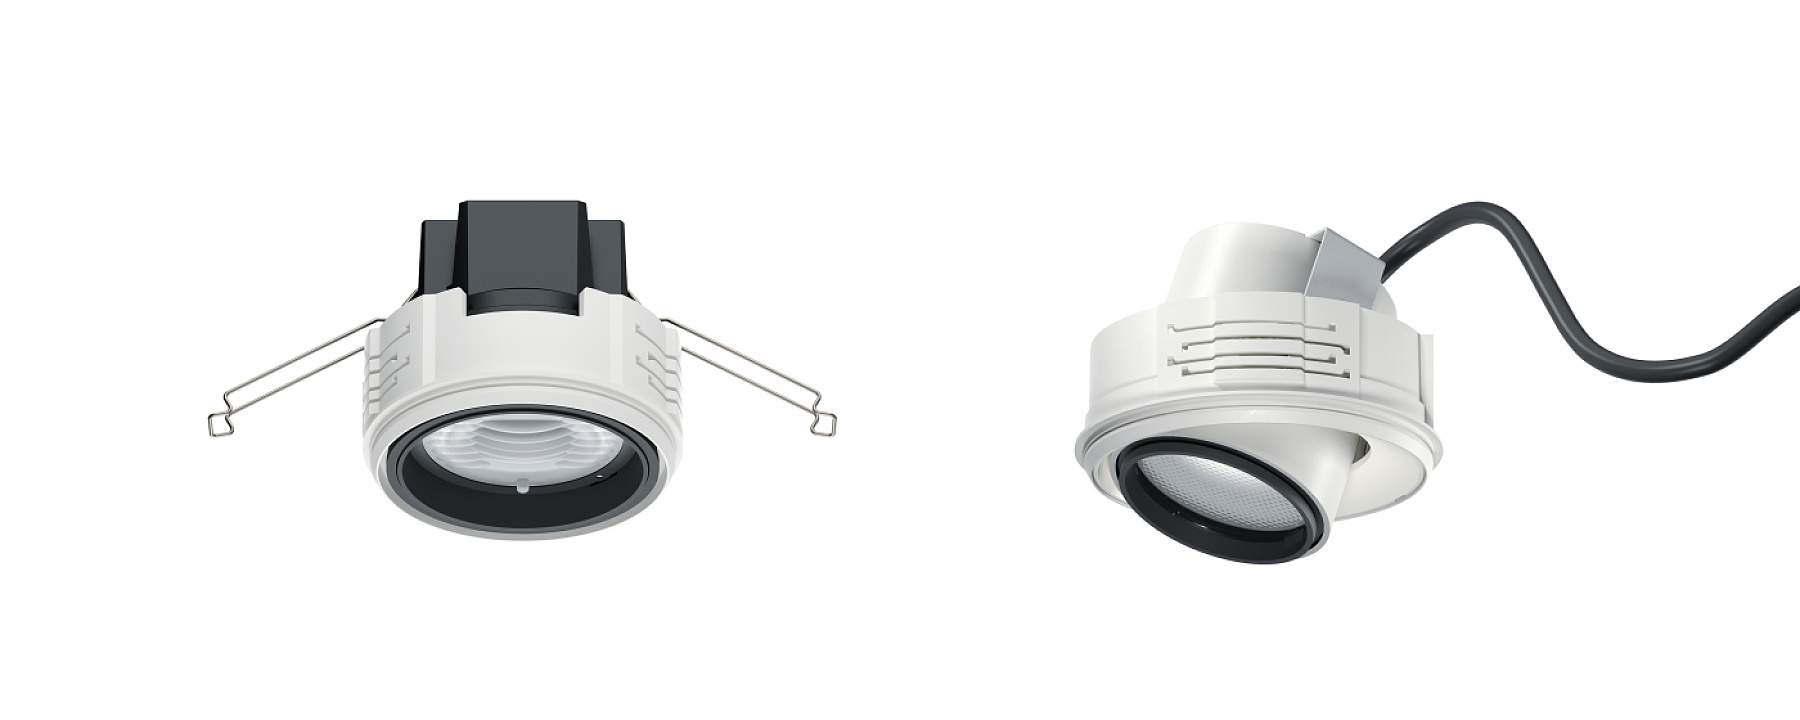 Starpoint - Recessed spotlights, recessed floodlights and recessed wallwashers